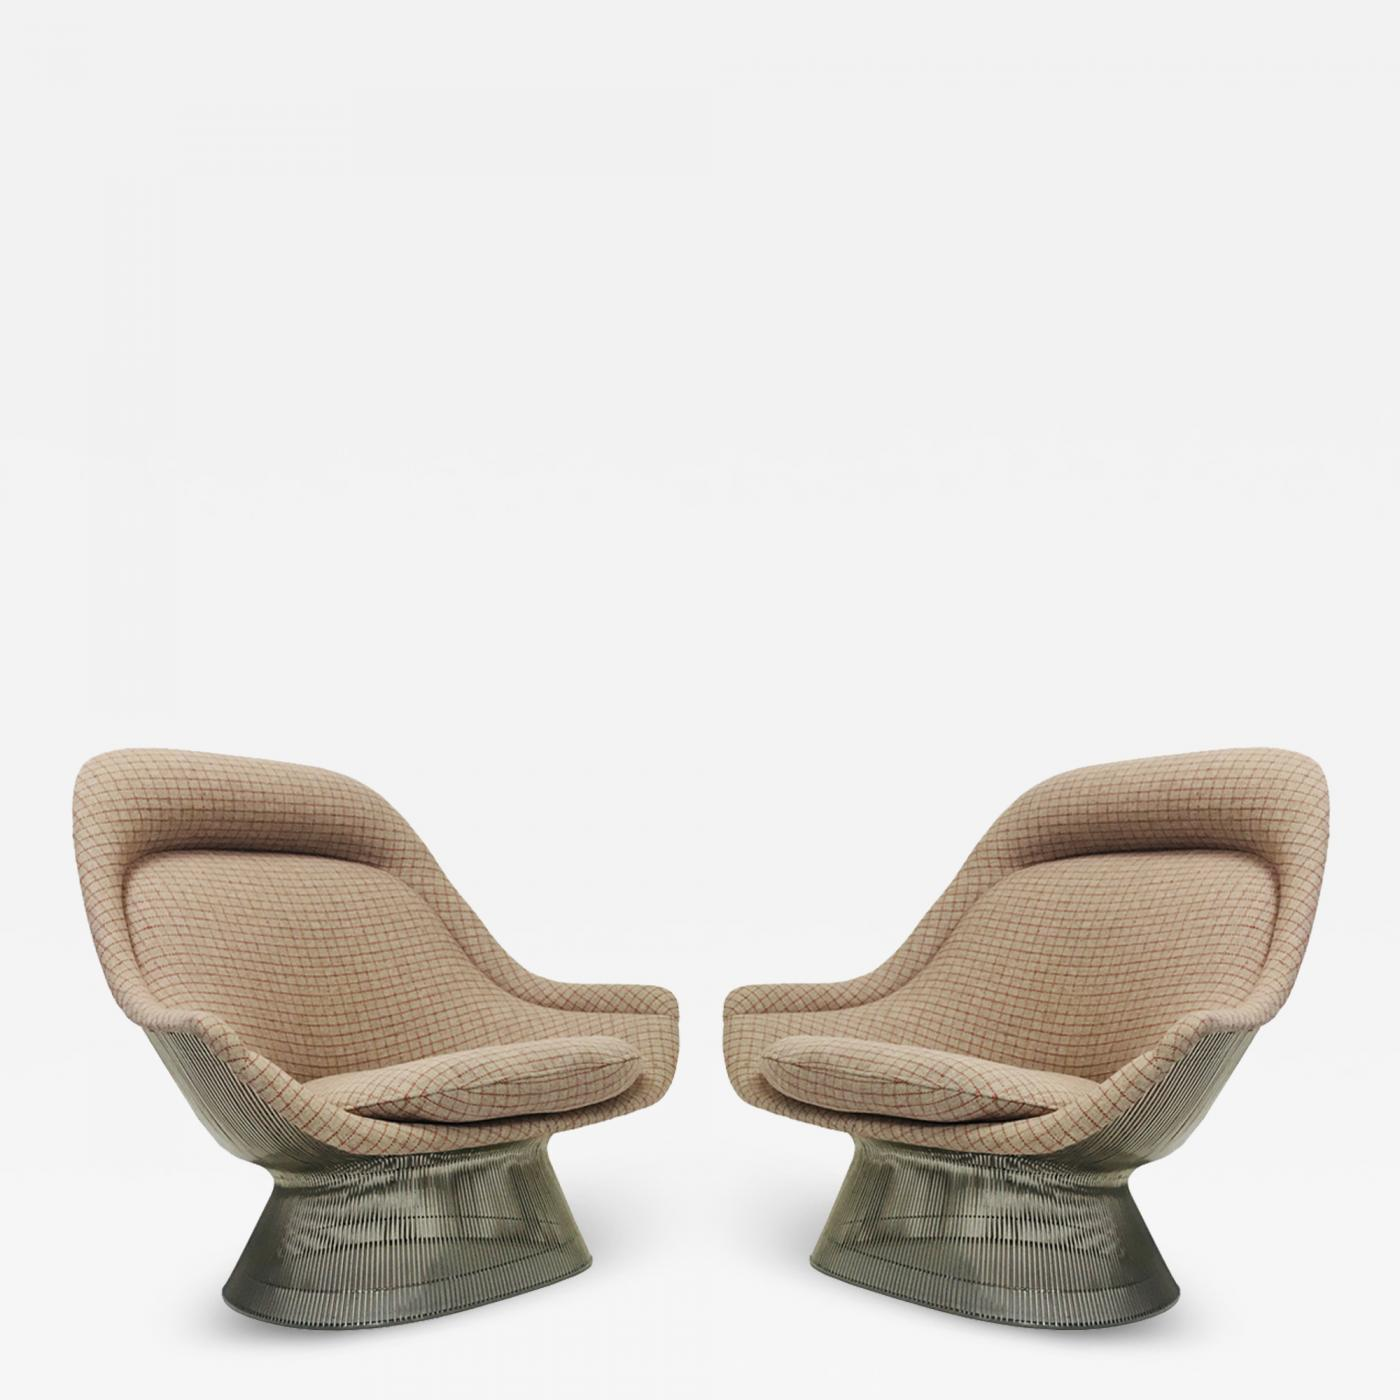 Magnificent Warren Platner Pair Of Vintage Lounge Chairs By Warren Platner Gamerscity Chair Design For Home Gamerscityorg